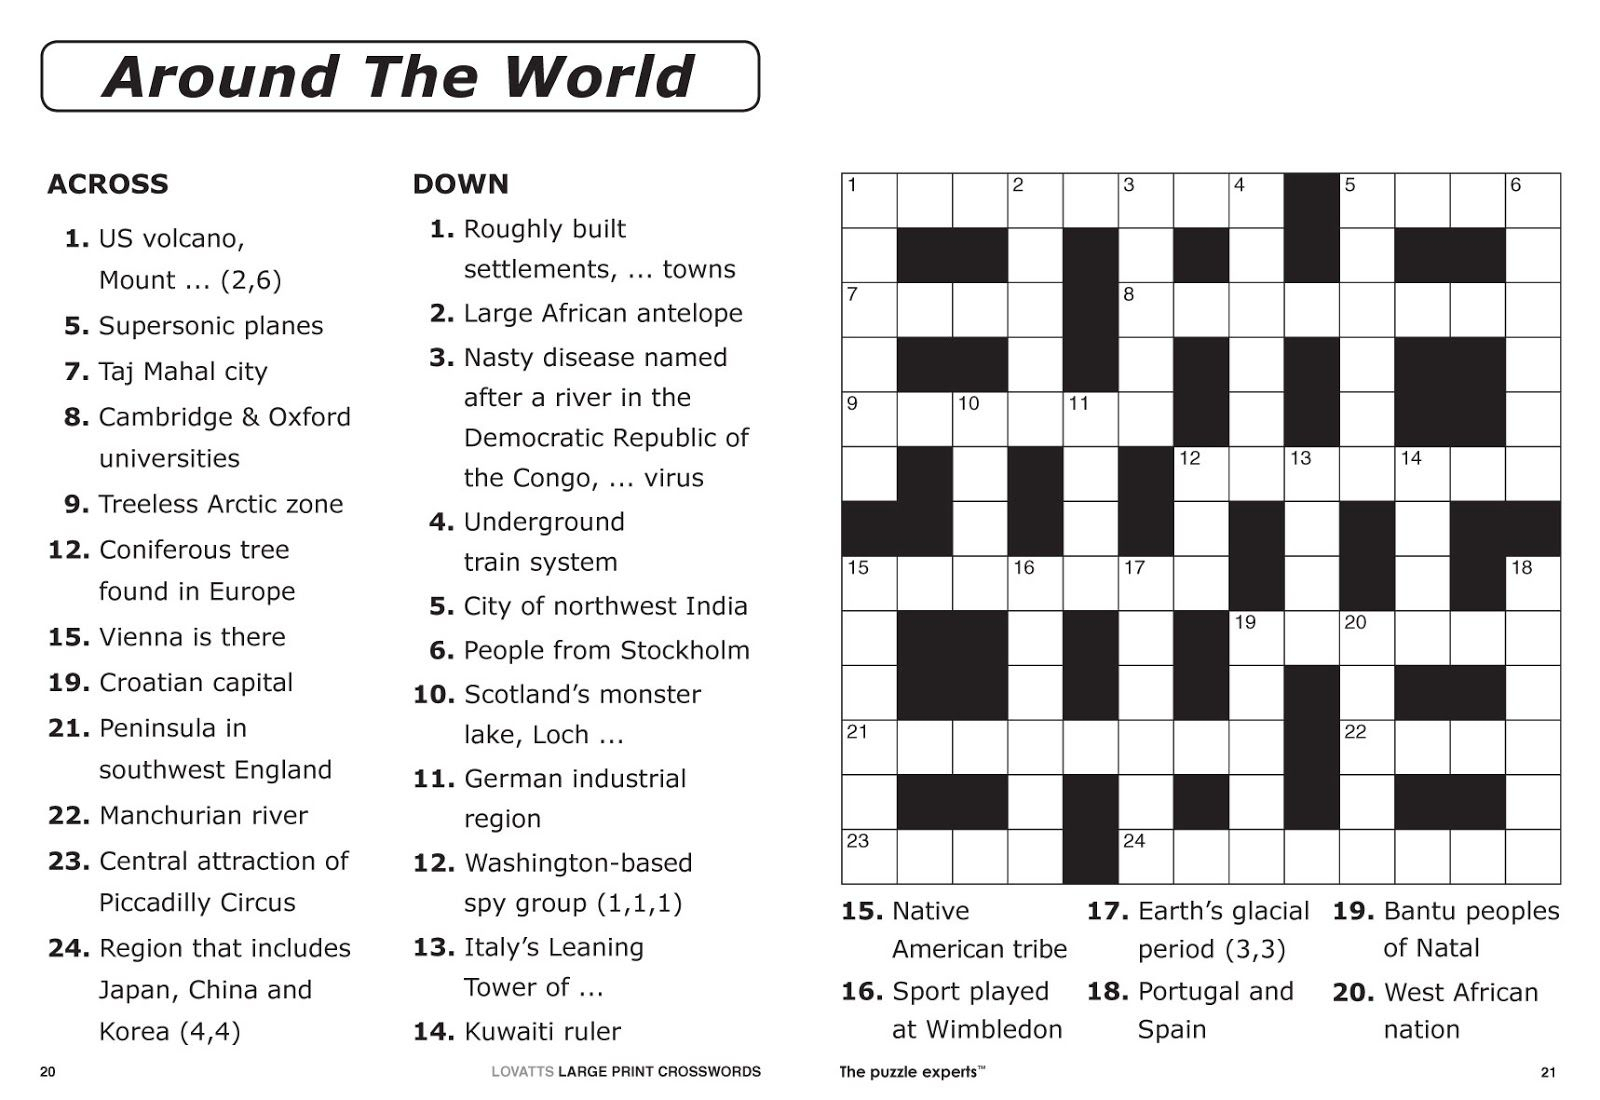 Free Printable Large Print Crossword Puzzles | M3U8 - Printable Puzzles In Spanish